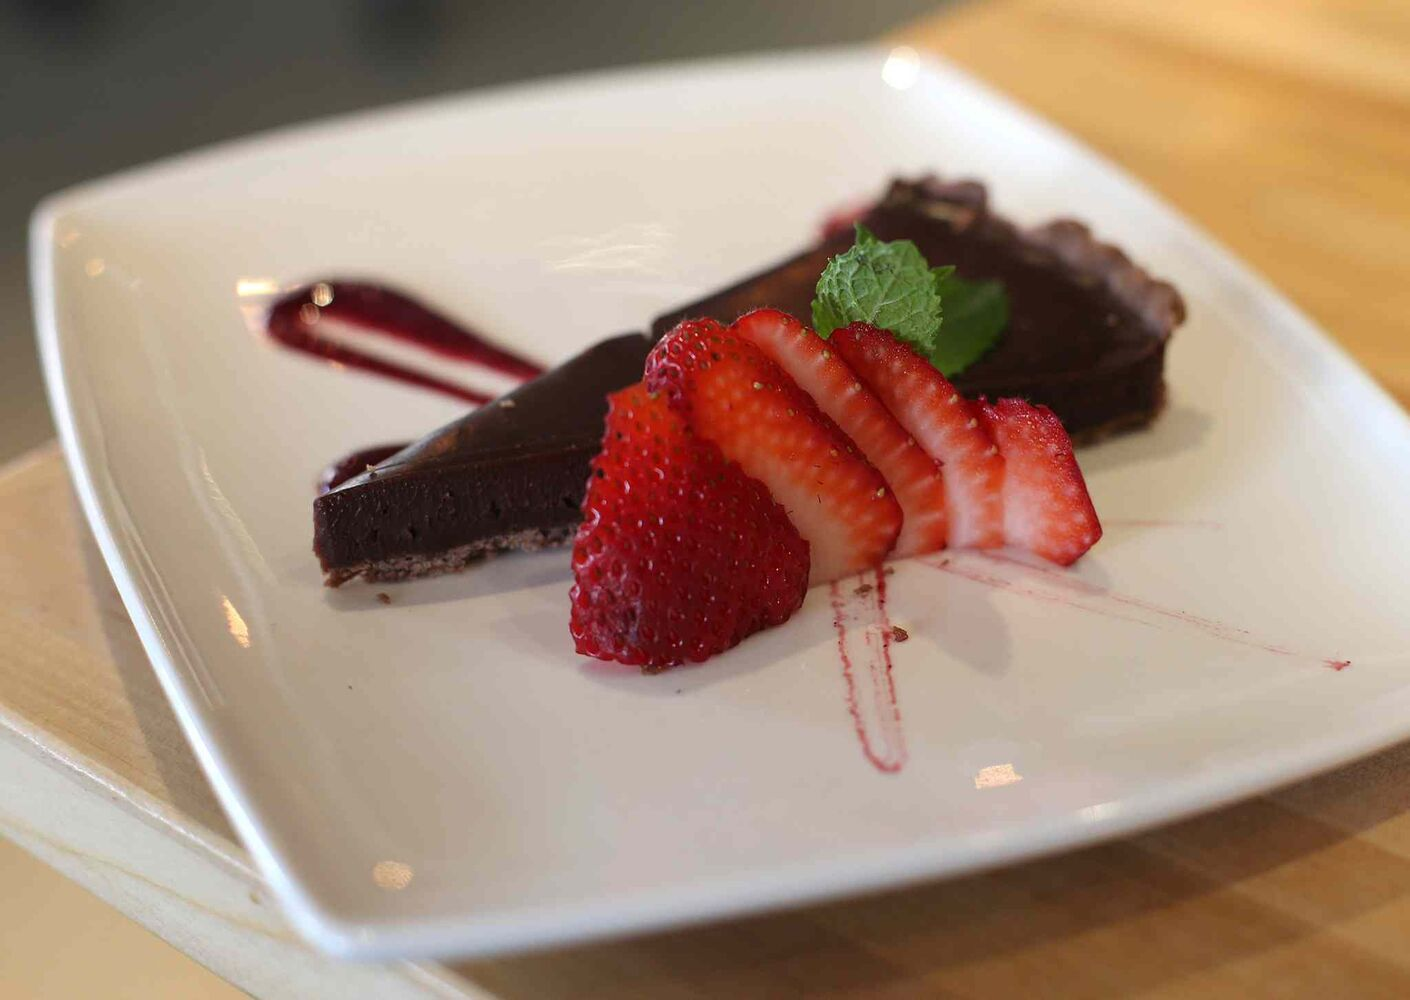 Chocolate peanut butter torte at the Cornerstone Bar and Restaurant. (Jason Halstead / Winnipeg Free Press)